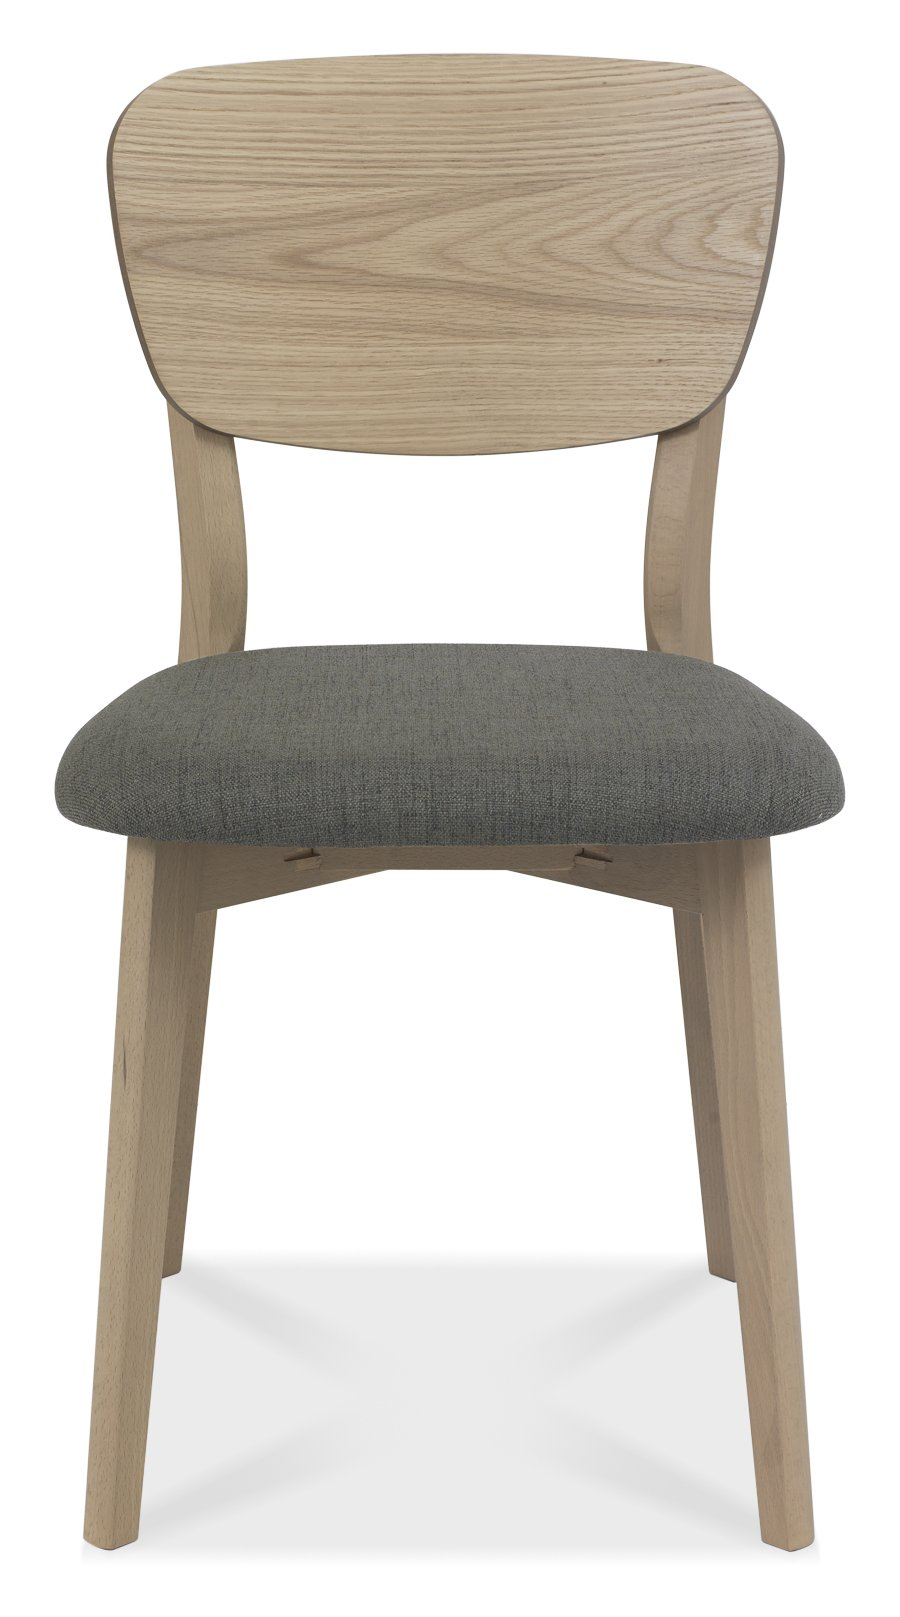 RETRO WOODEN DINING CHAIR - FRONT DETAIL